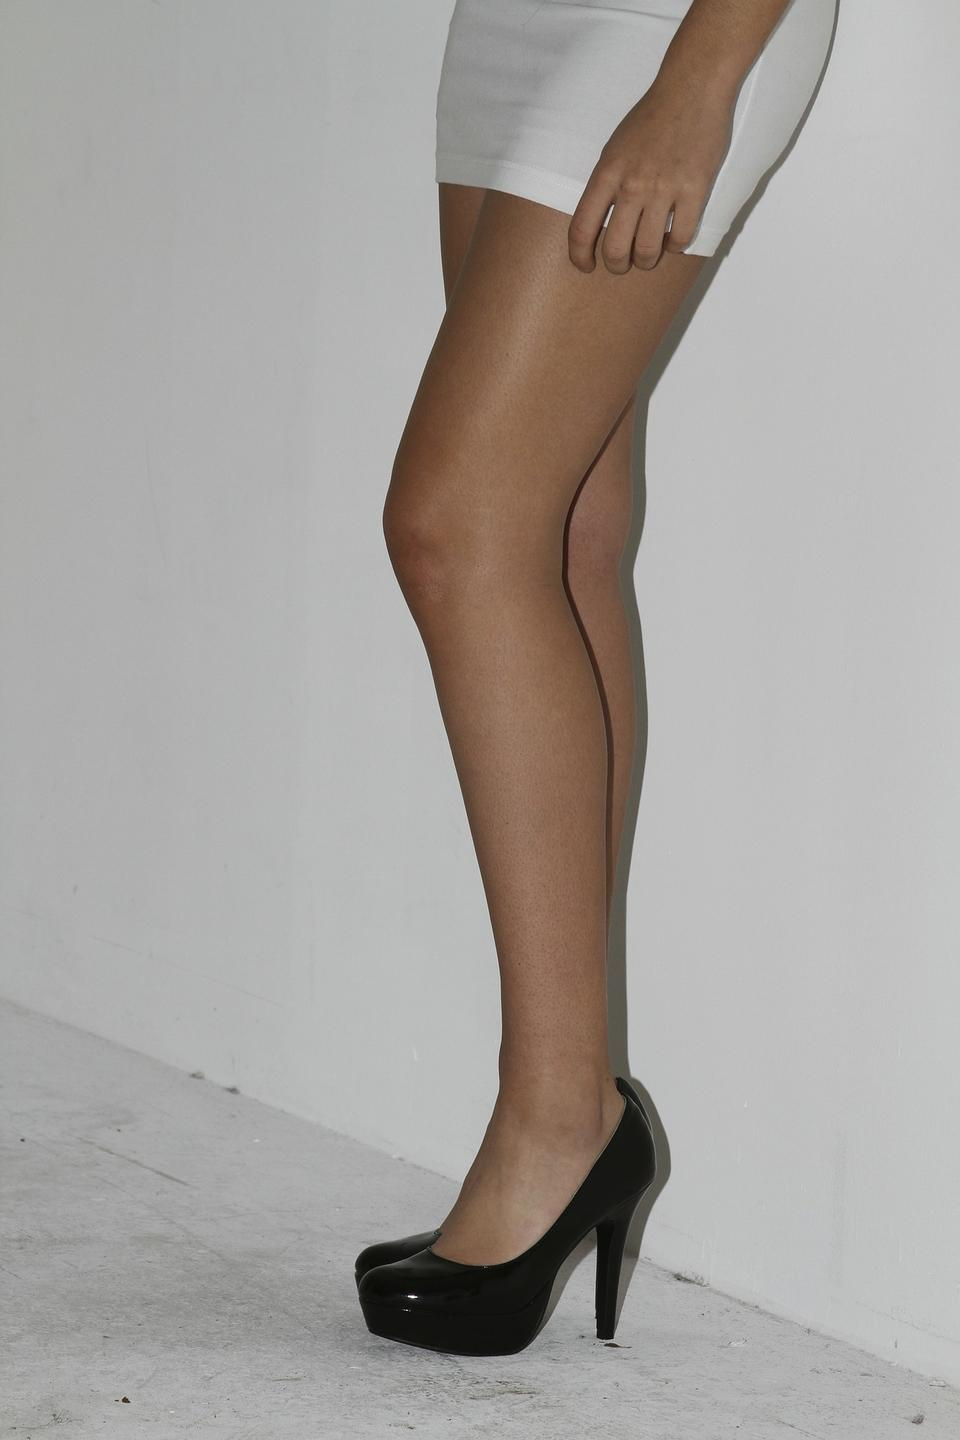 Attractive Long Sexy Legs Girl